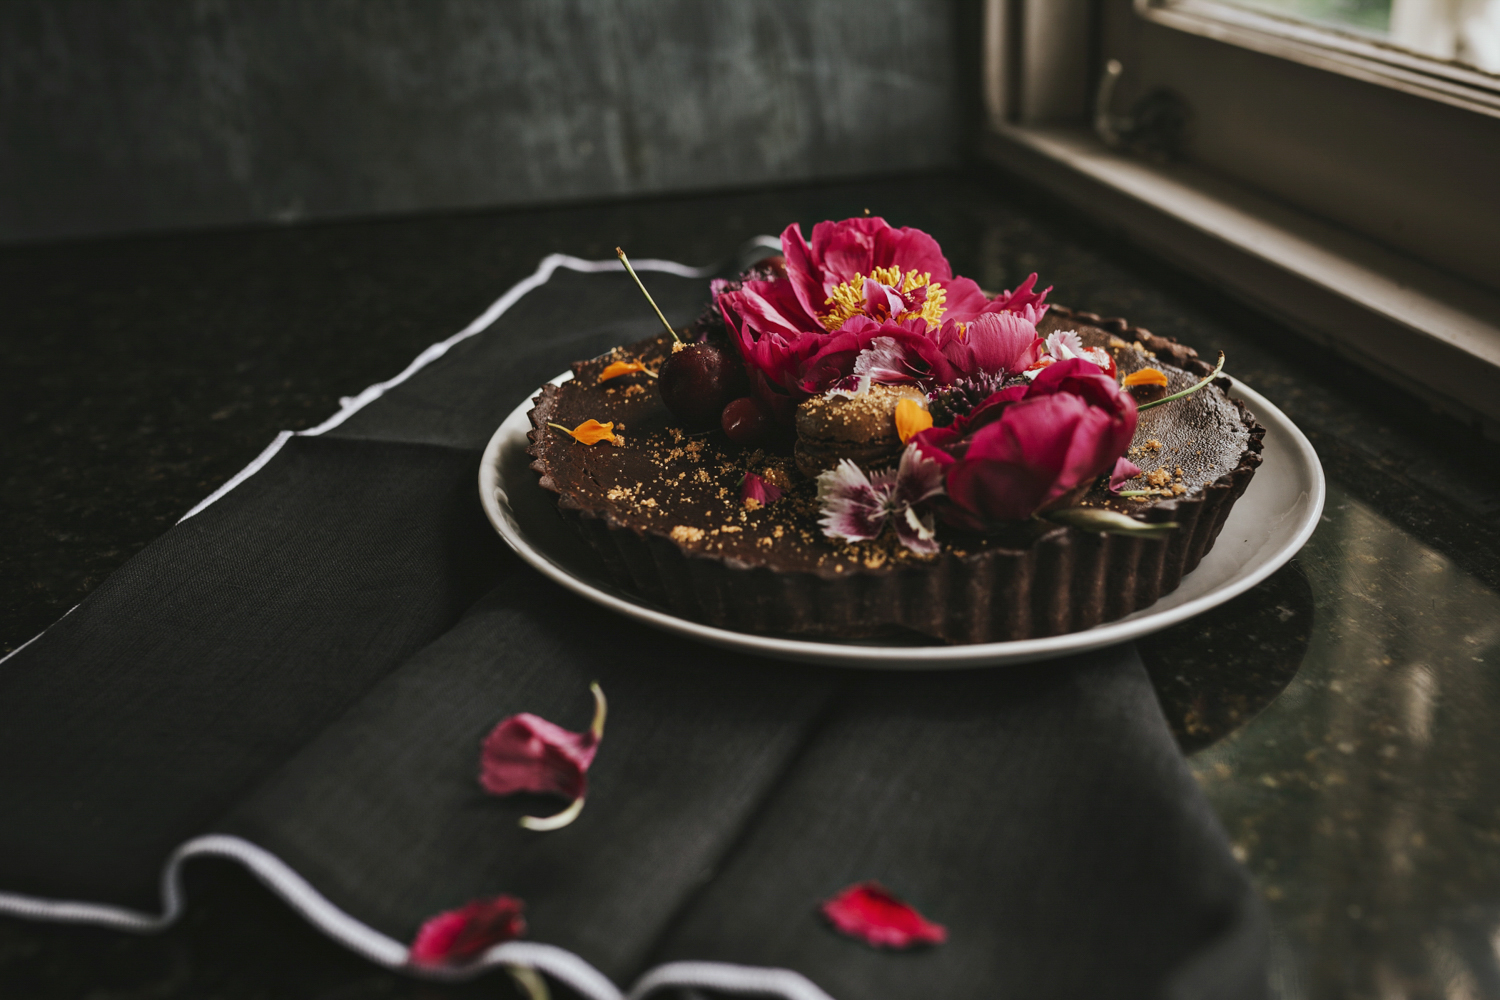 Chocolate tart with flowers and cherries sits on kitchen bench for food photography session.